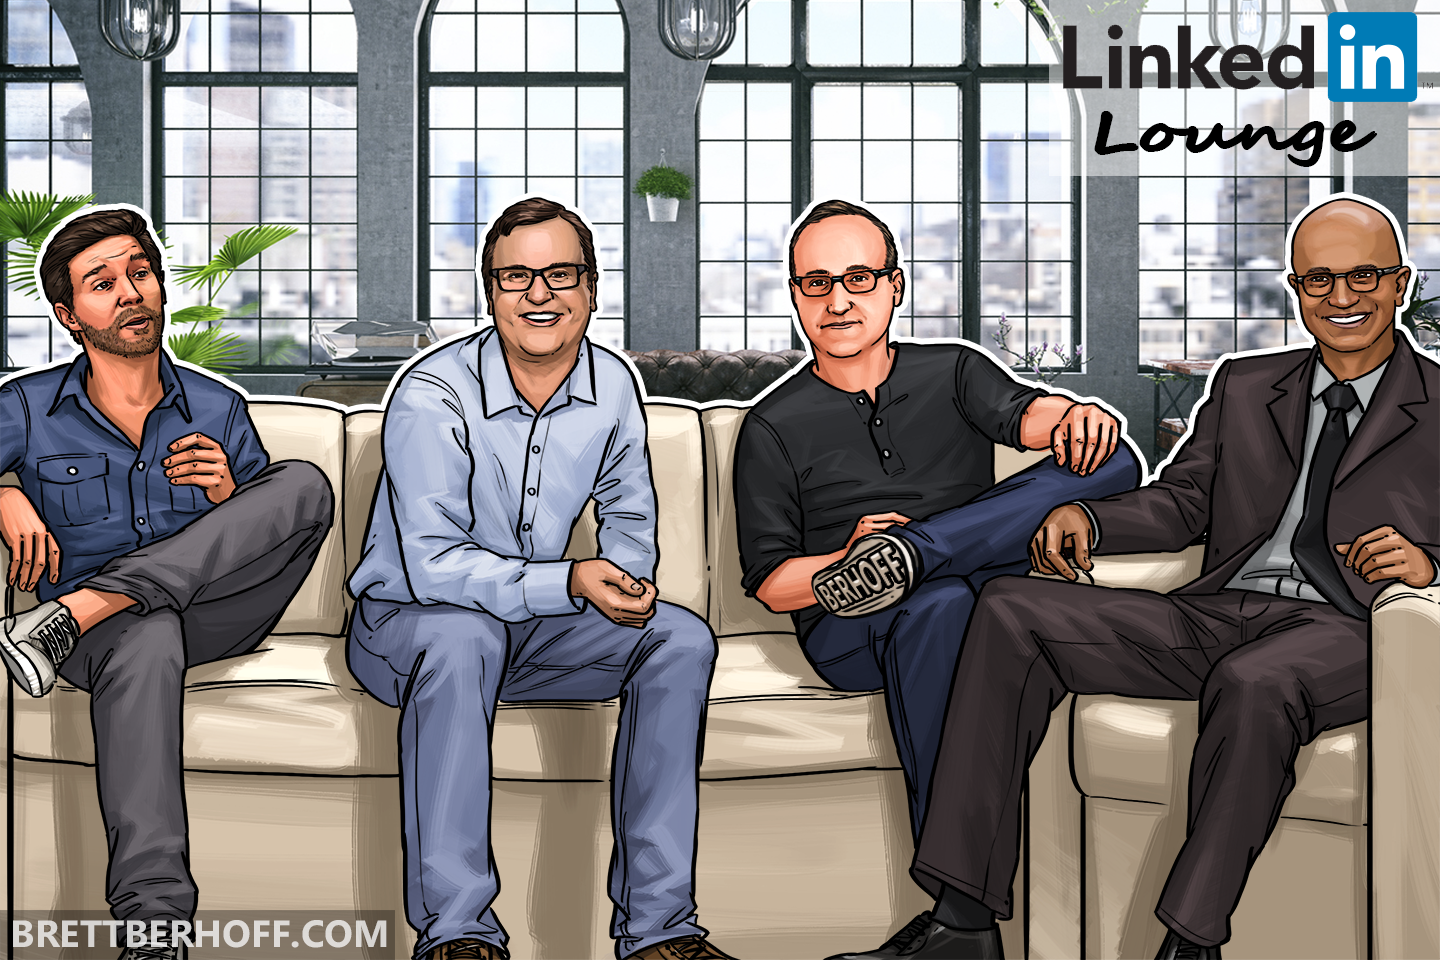 Linkedin Lounge Concept by Brett Berhoff.  Featuring Jeff Weiner(CEO of Linkedin), Reid Hoffman(Co-Founder of Linkedin), Brett Berhoff(Business Strategist), and Satya Nadella(CEO of Microsoft).